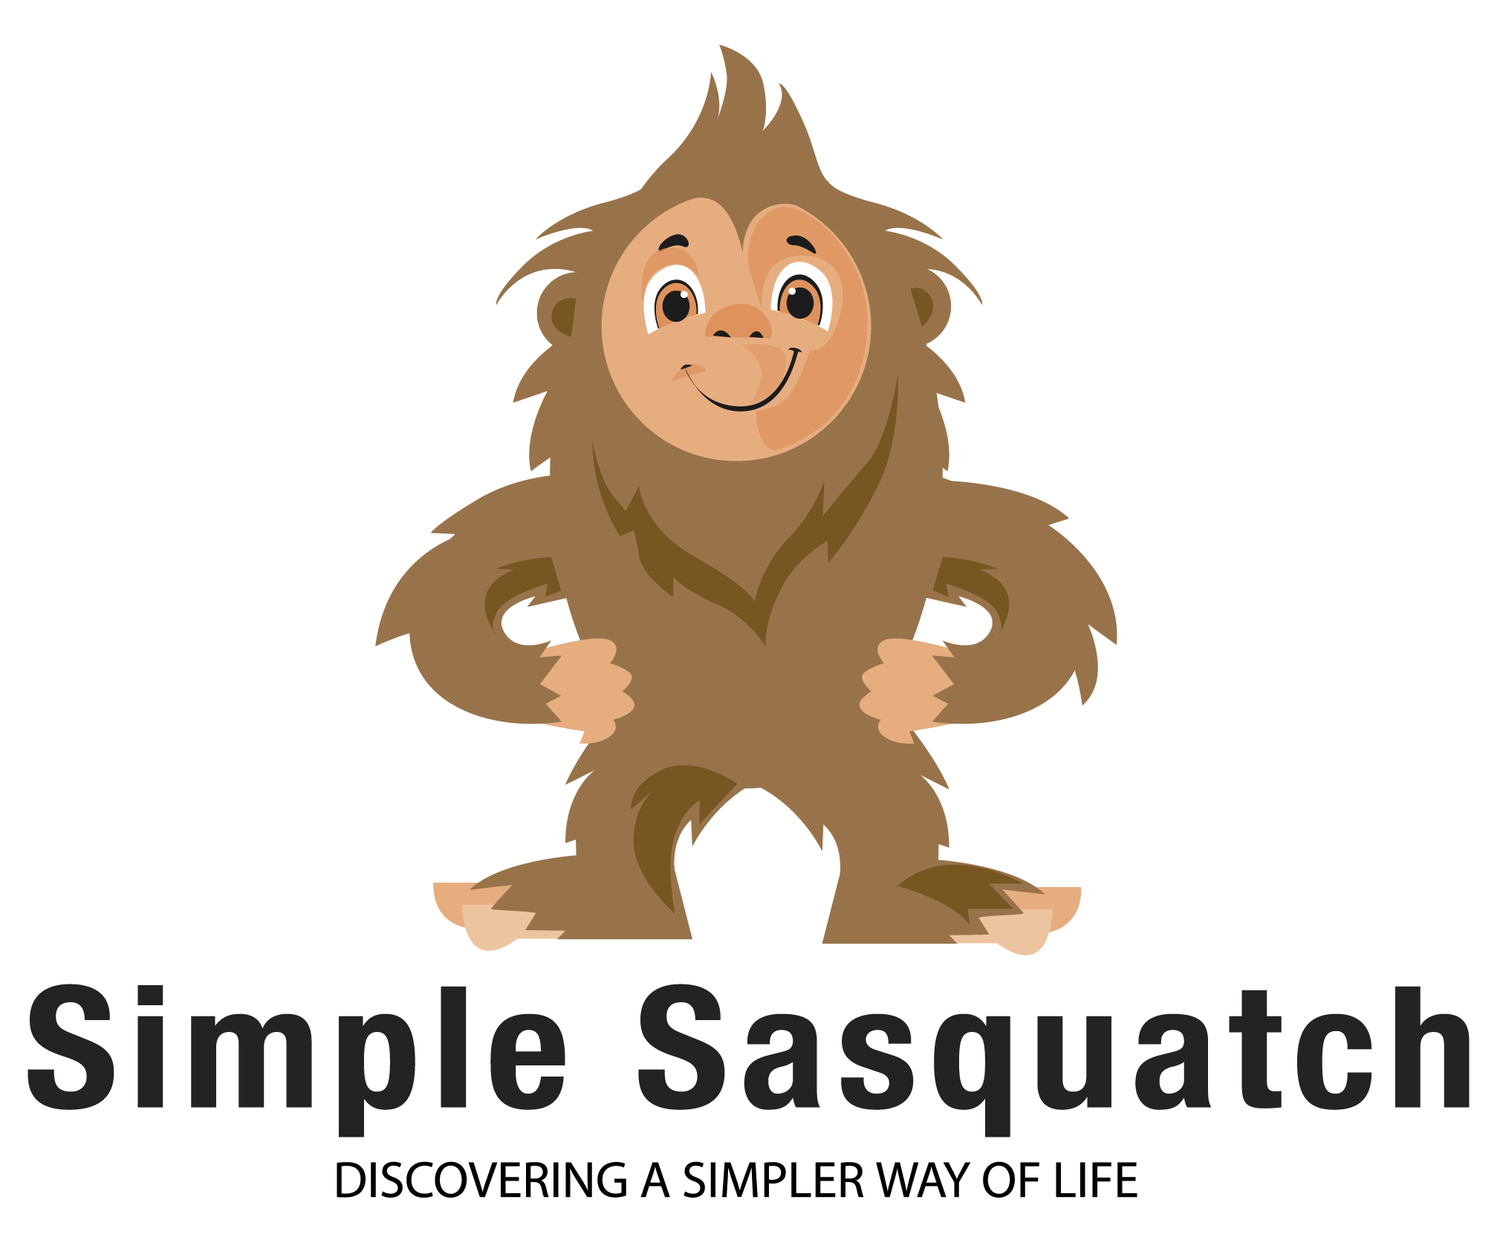 Simple Sasquatch